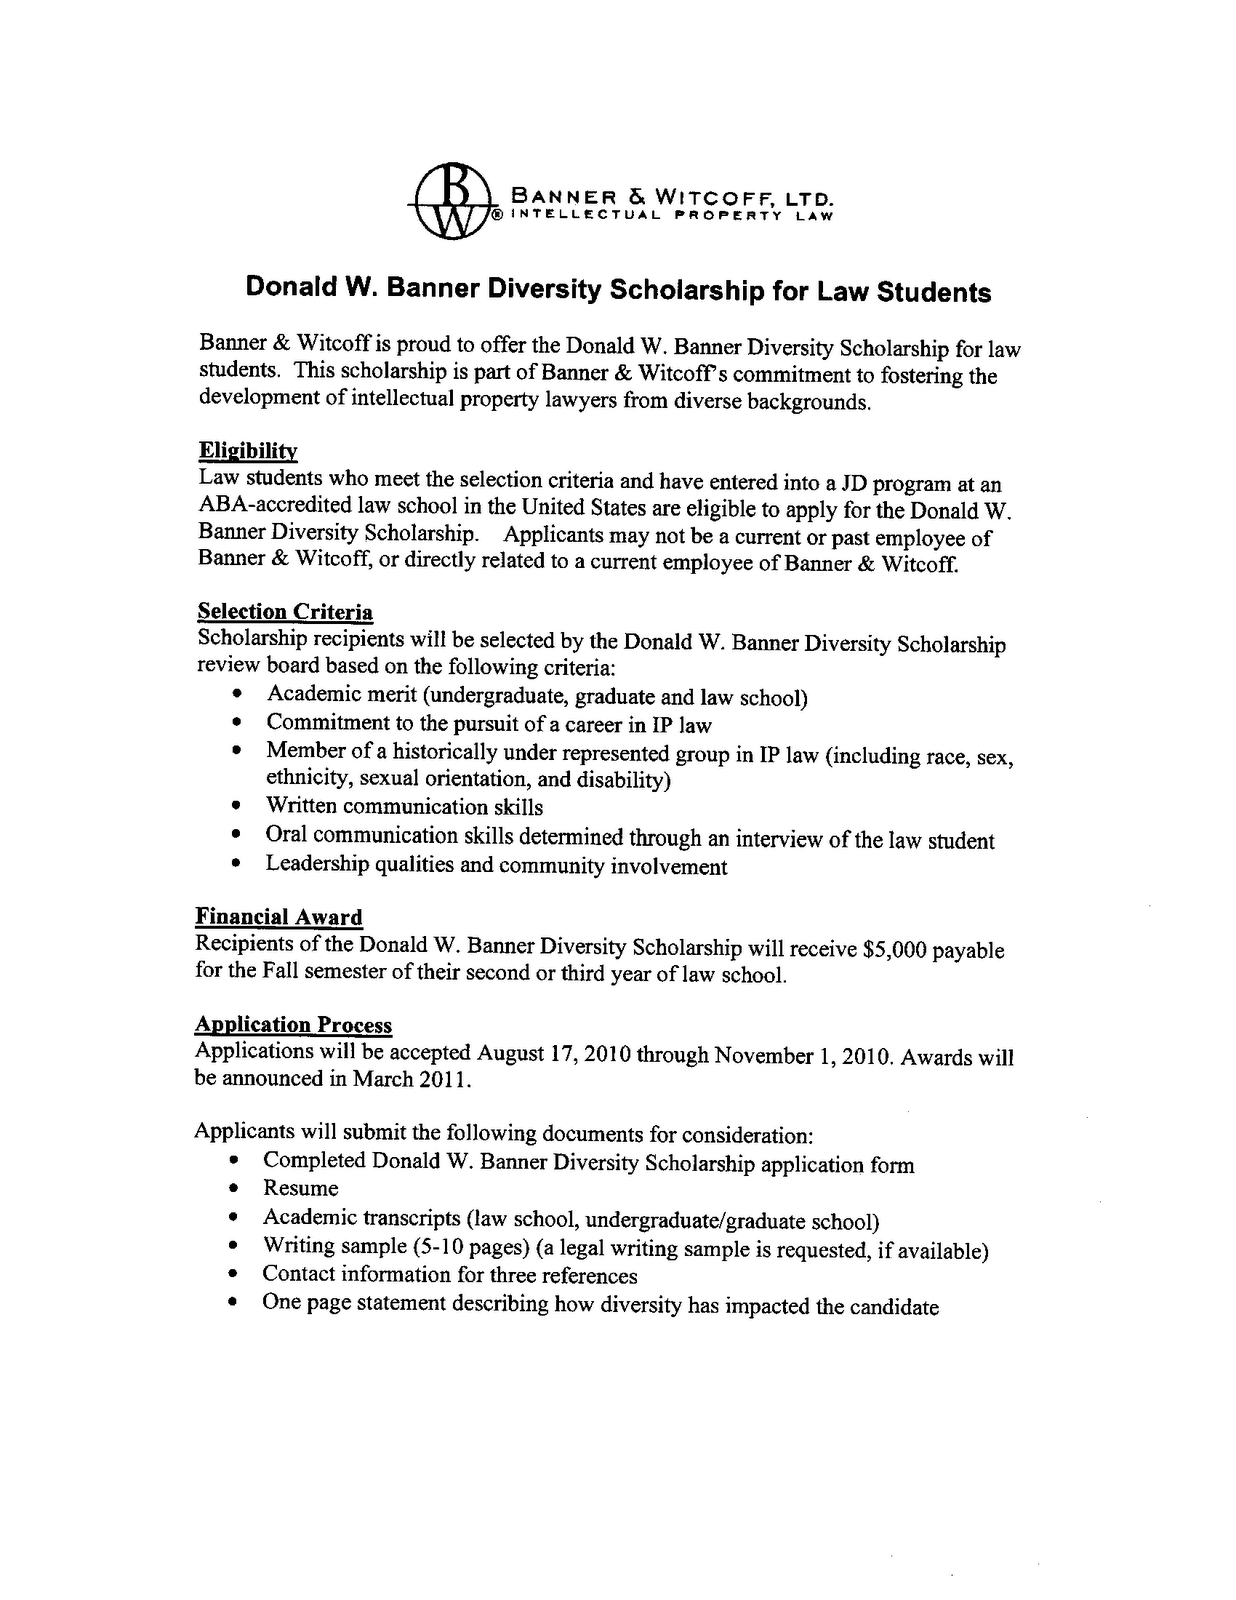 027 Sample Scholarship Essays Ww Essay How To Write Good For College Scholarships Outline With Additional Form Personal Singular Without Writing High School Juniors Class Of 2020 No 2019 Full